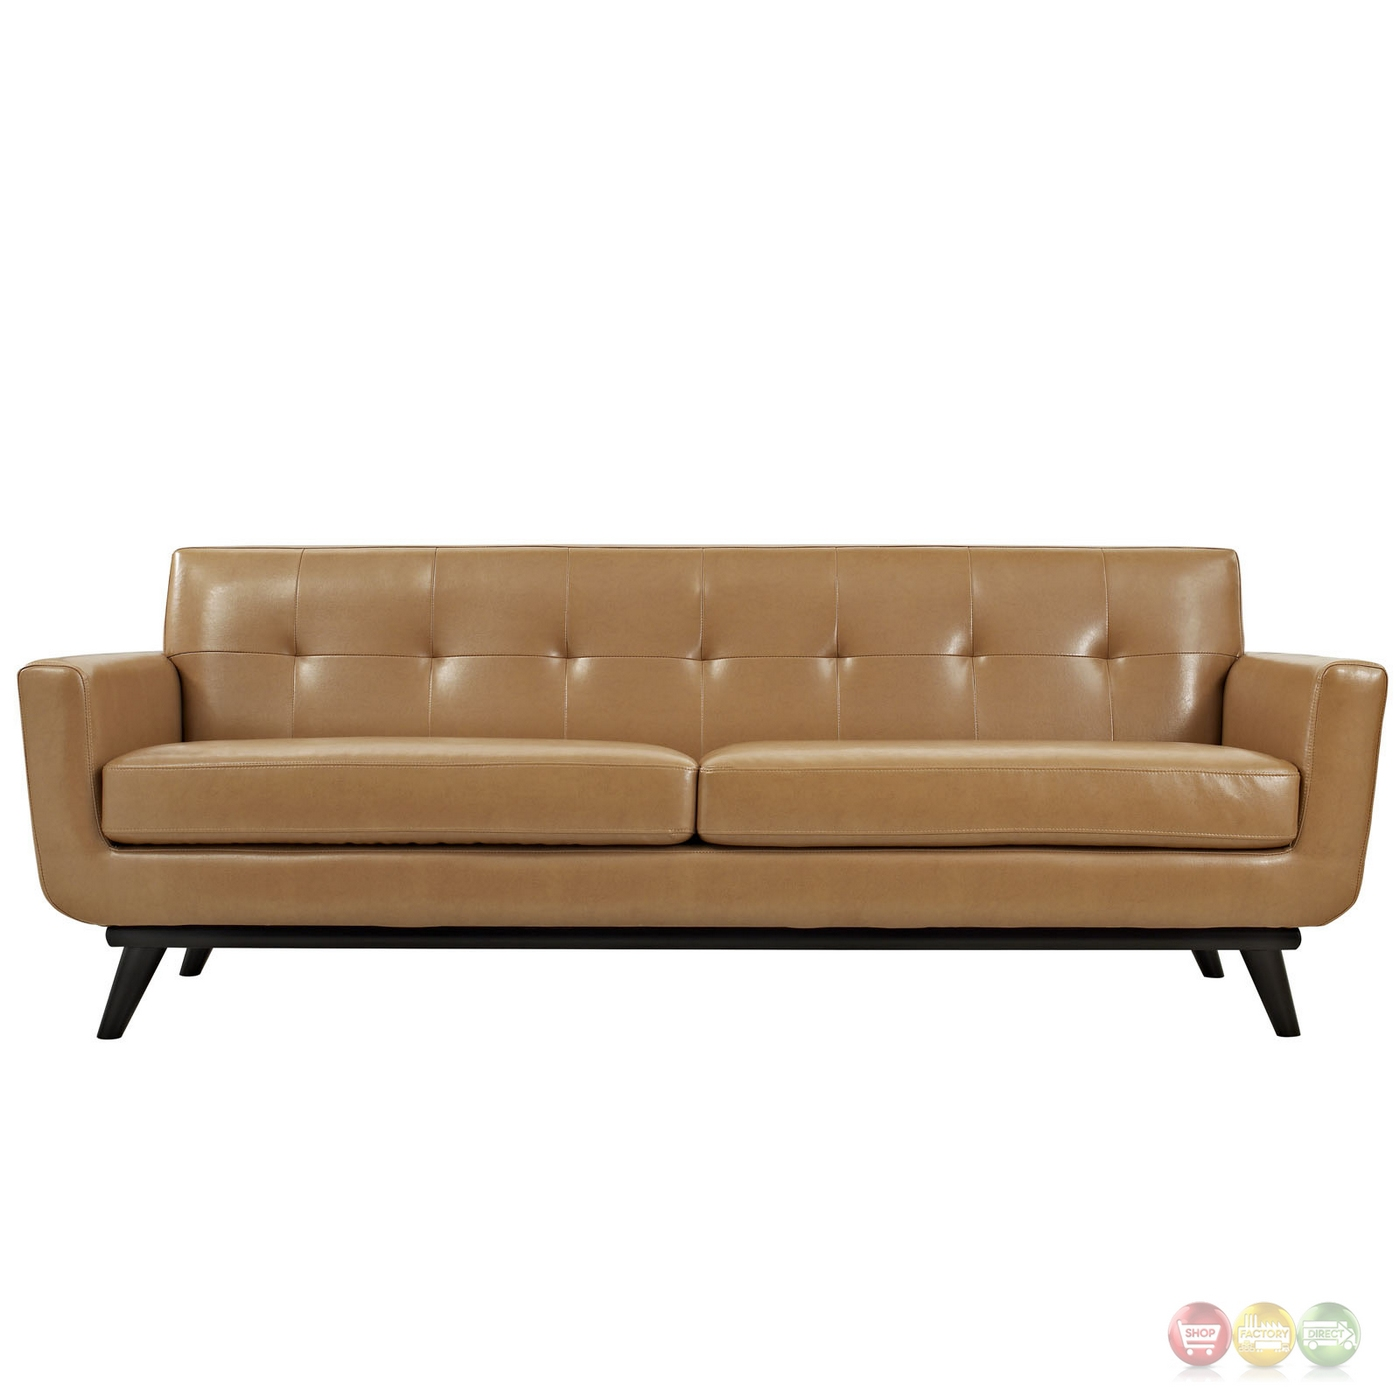 Engage Modern Bonded Leather Sofa With Button Tufted